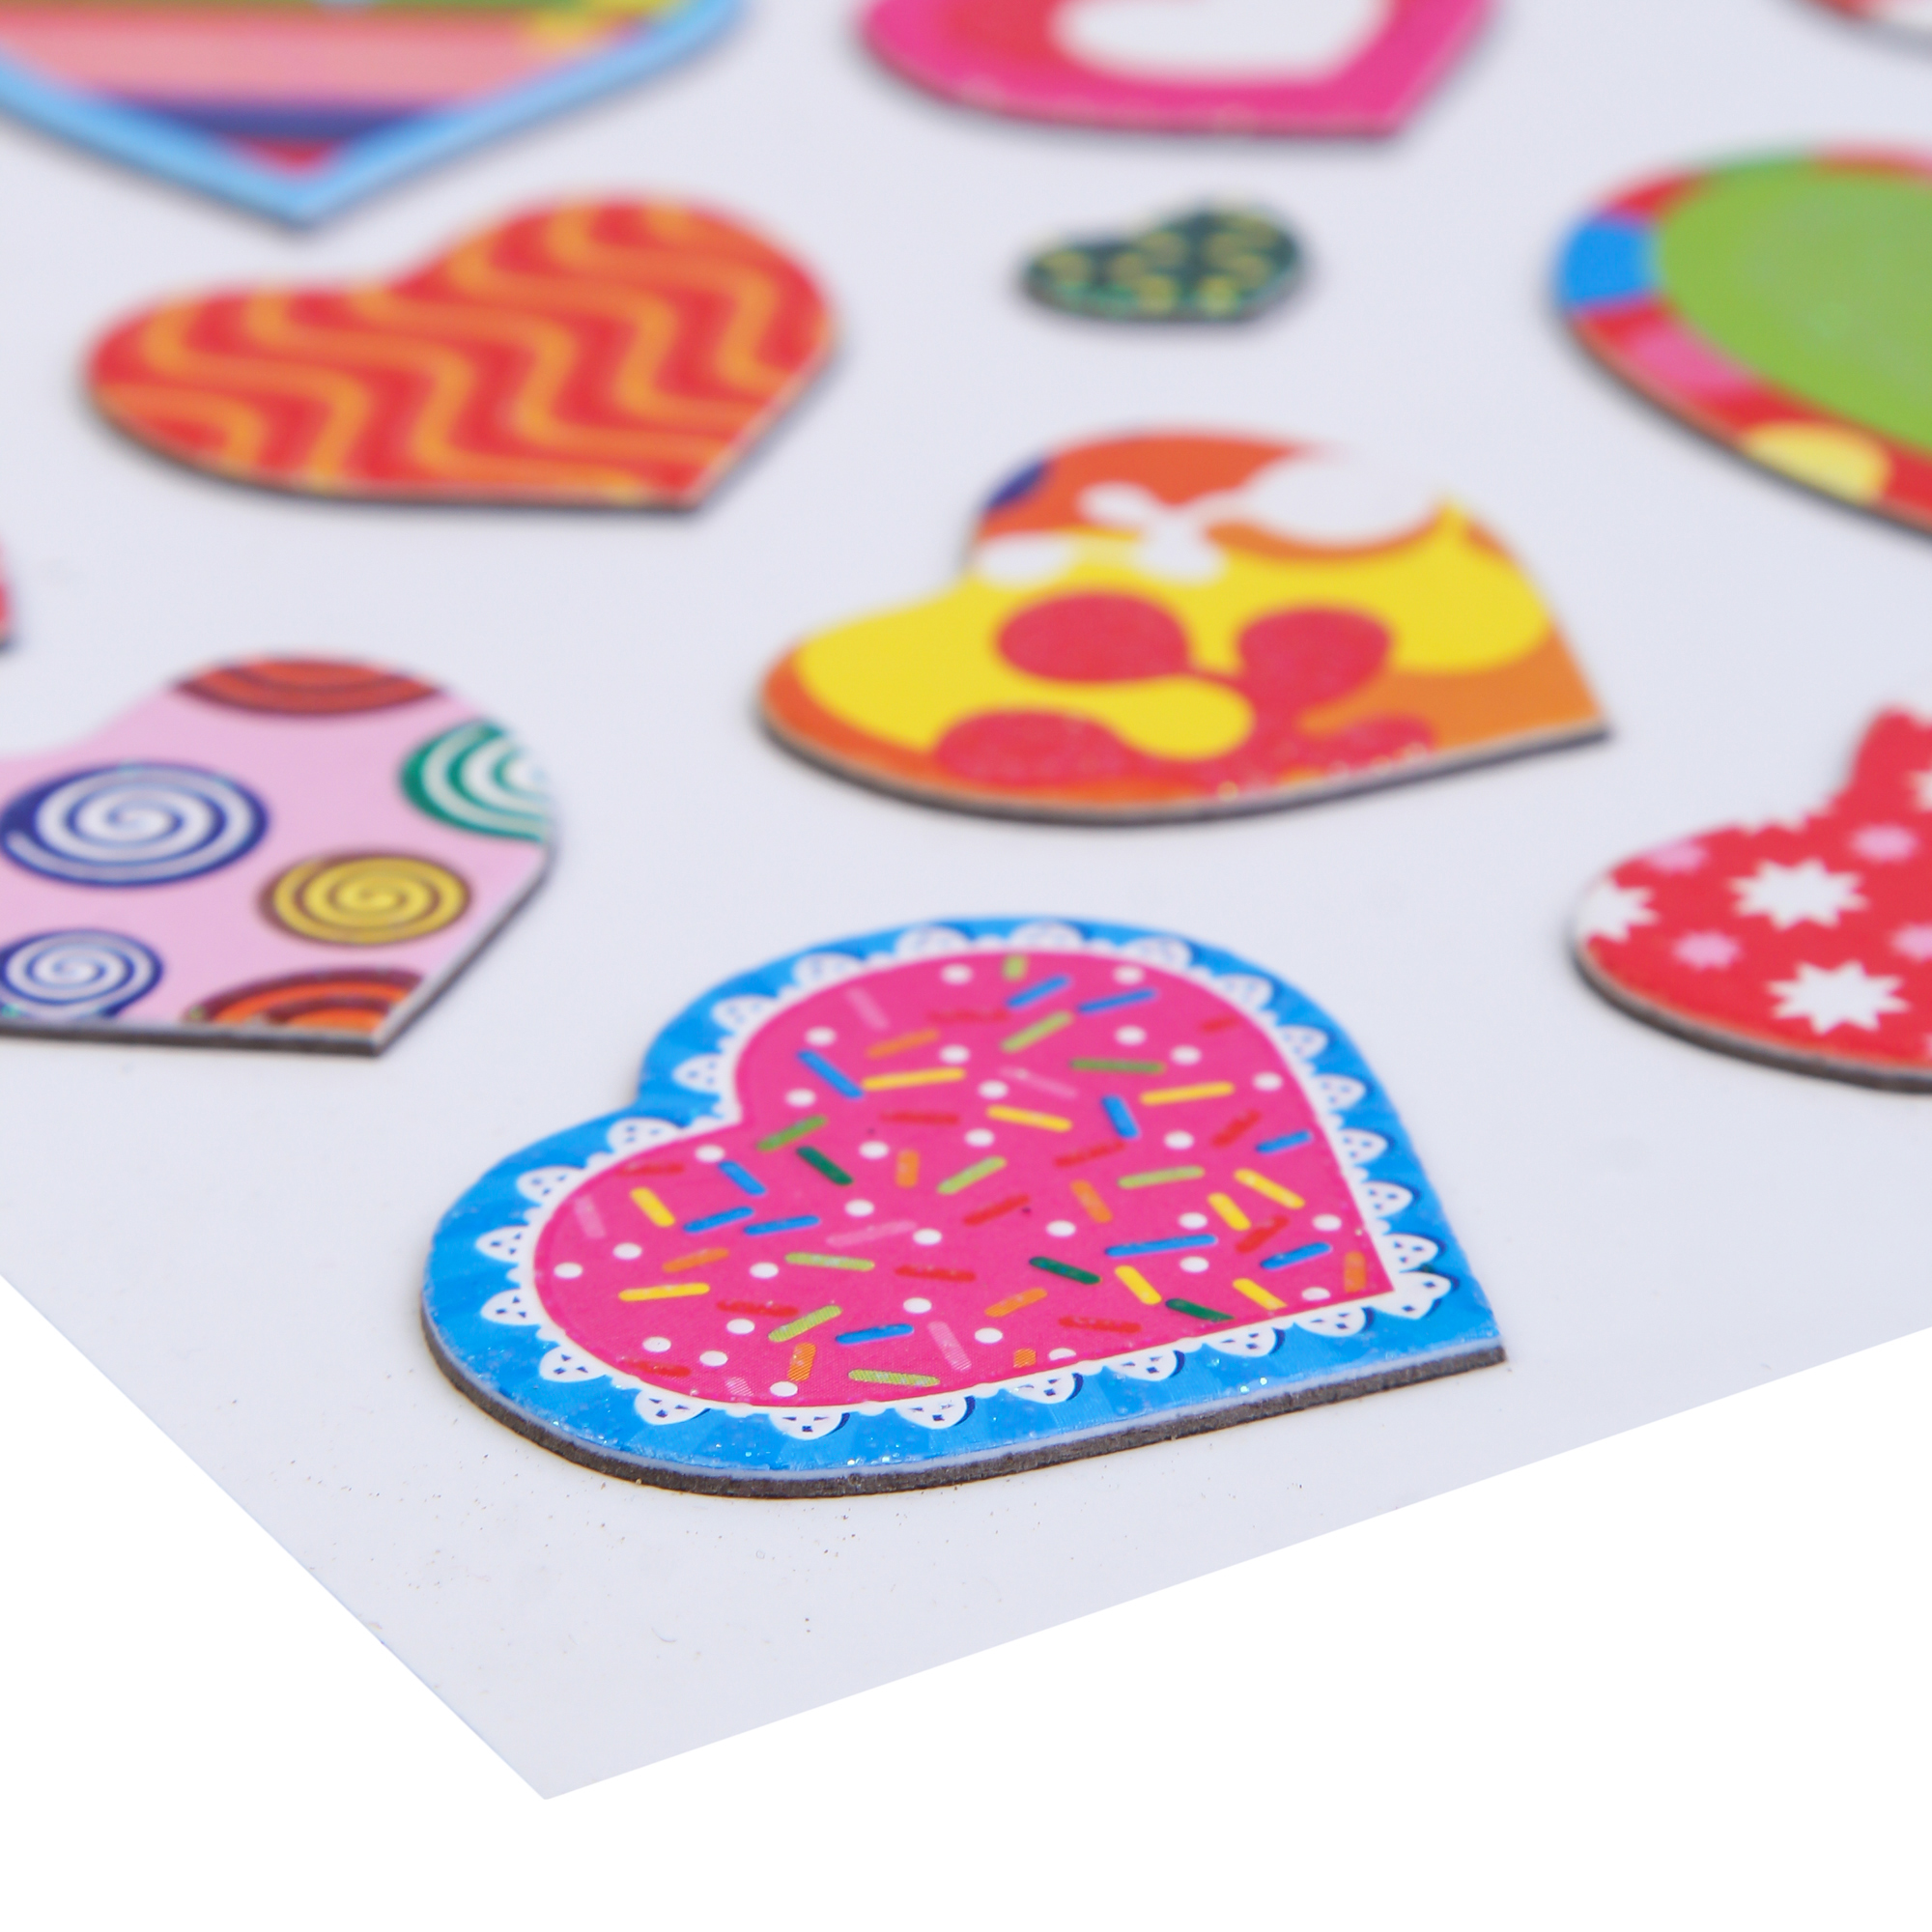 Craft Villa Handmade Heart Card Board Sticker